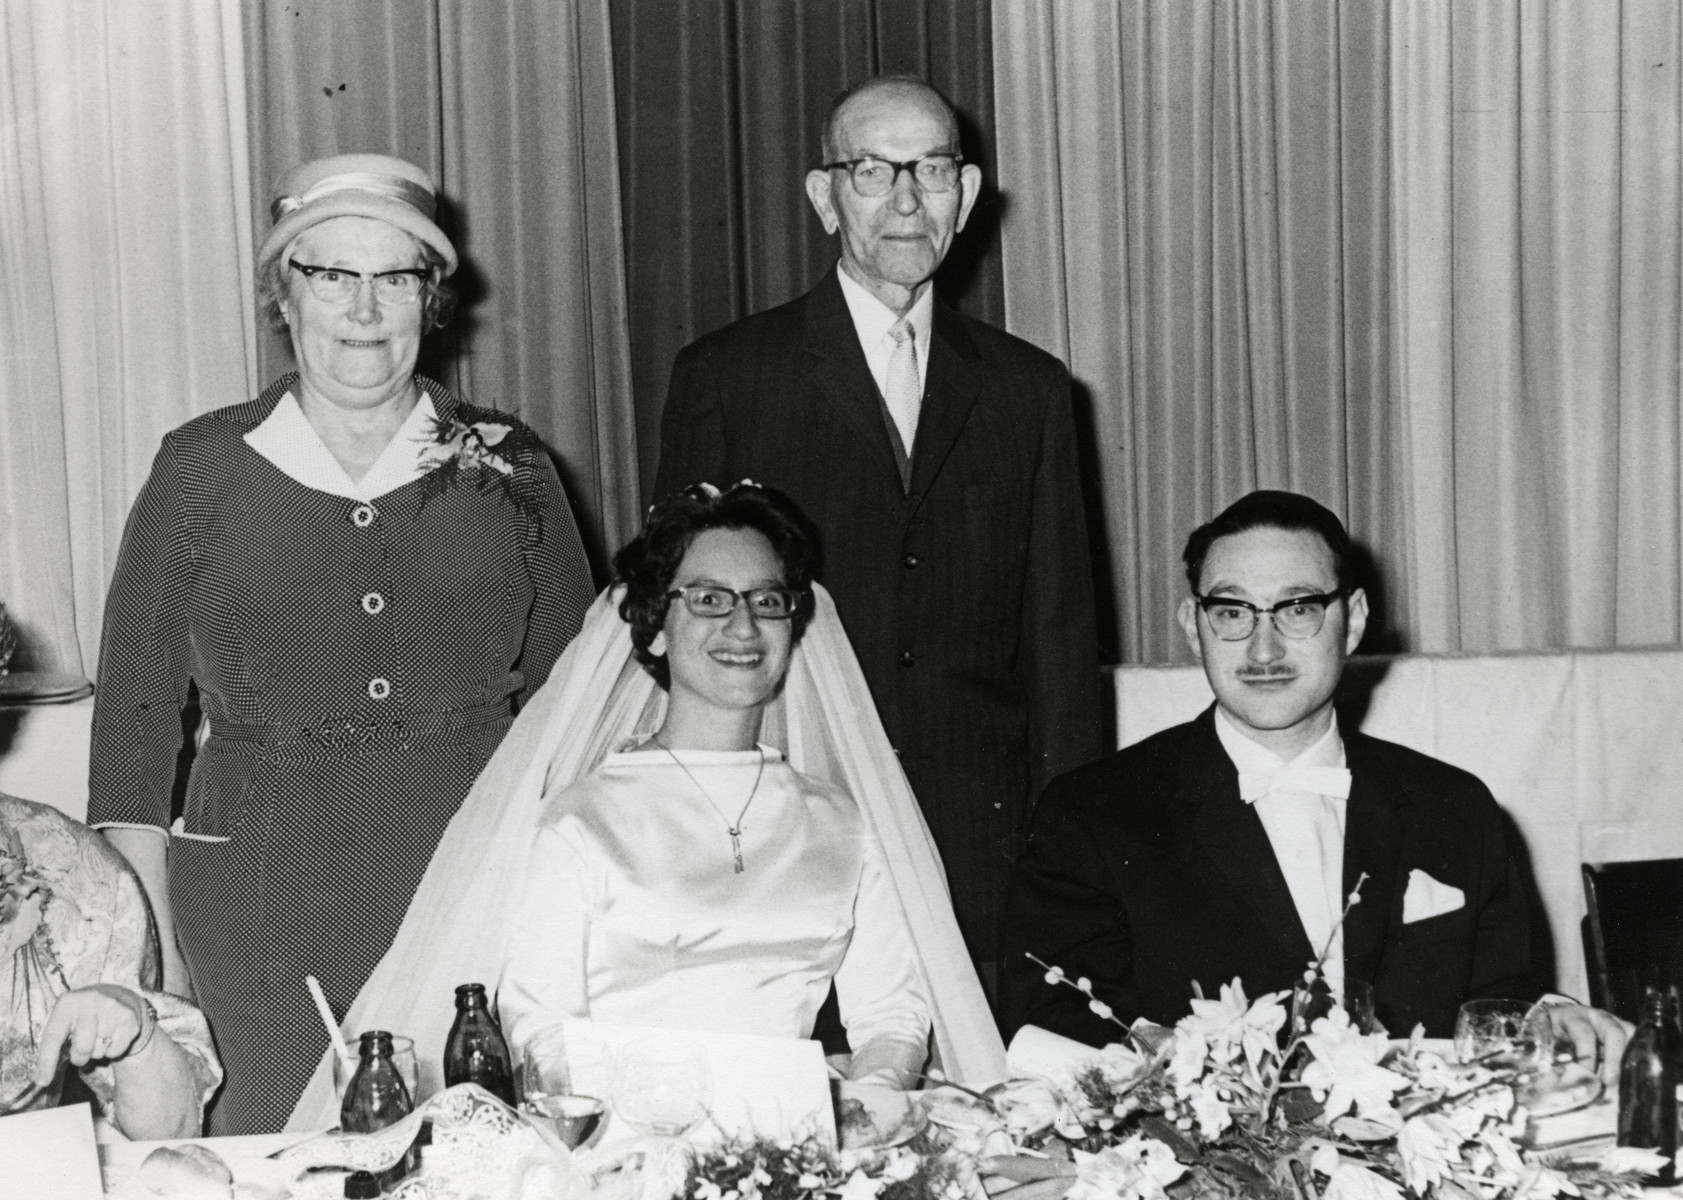 Ruth Eisenmann (Lange) poses with her rescuers at her wedding.  Pictured are Ruth and Gershon Lange and Bertha Hugygens-Busch and Meryn Hugygens.